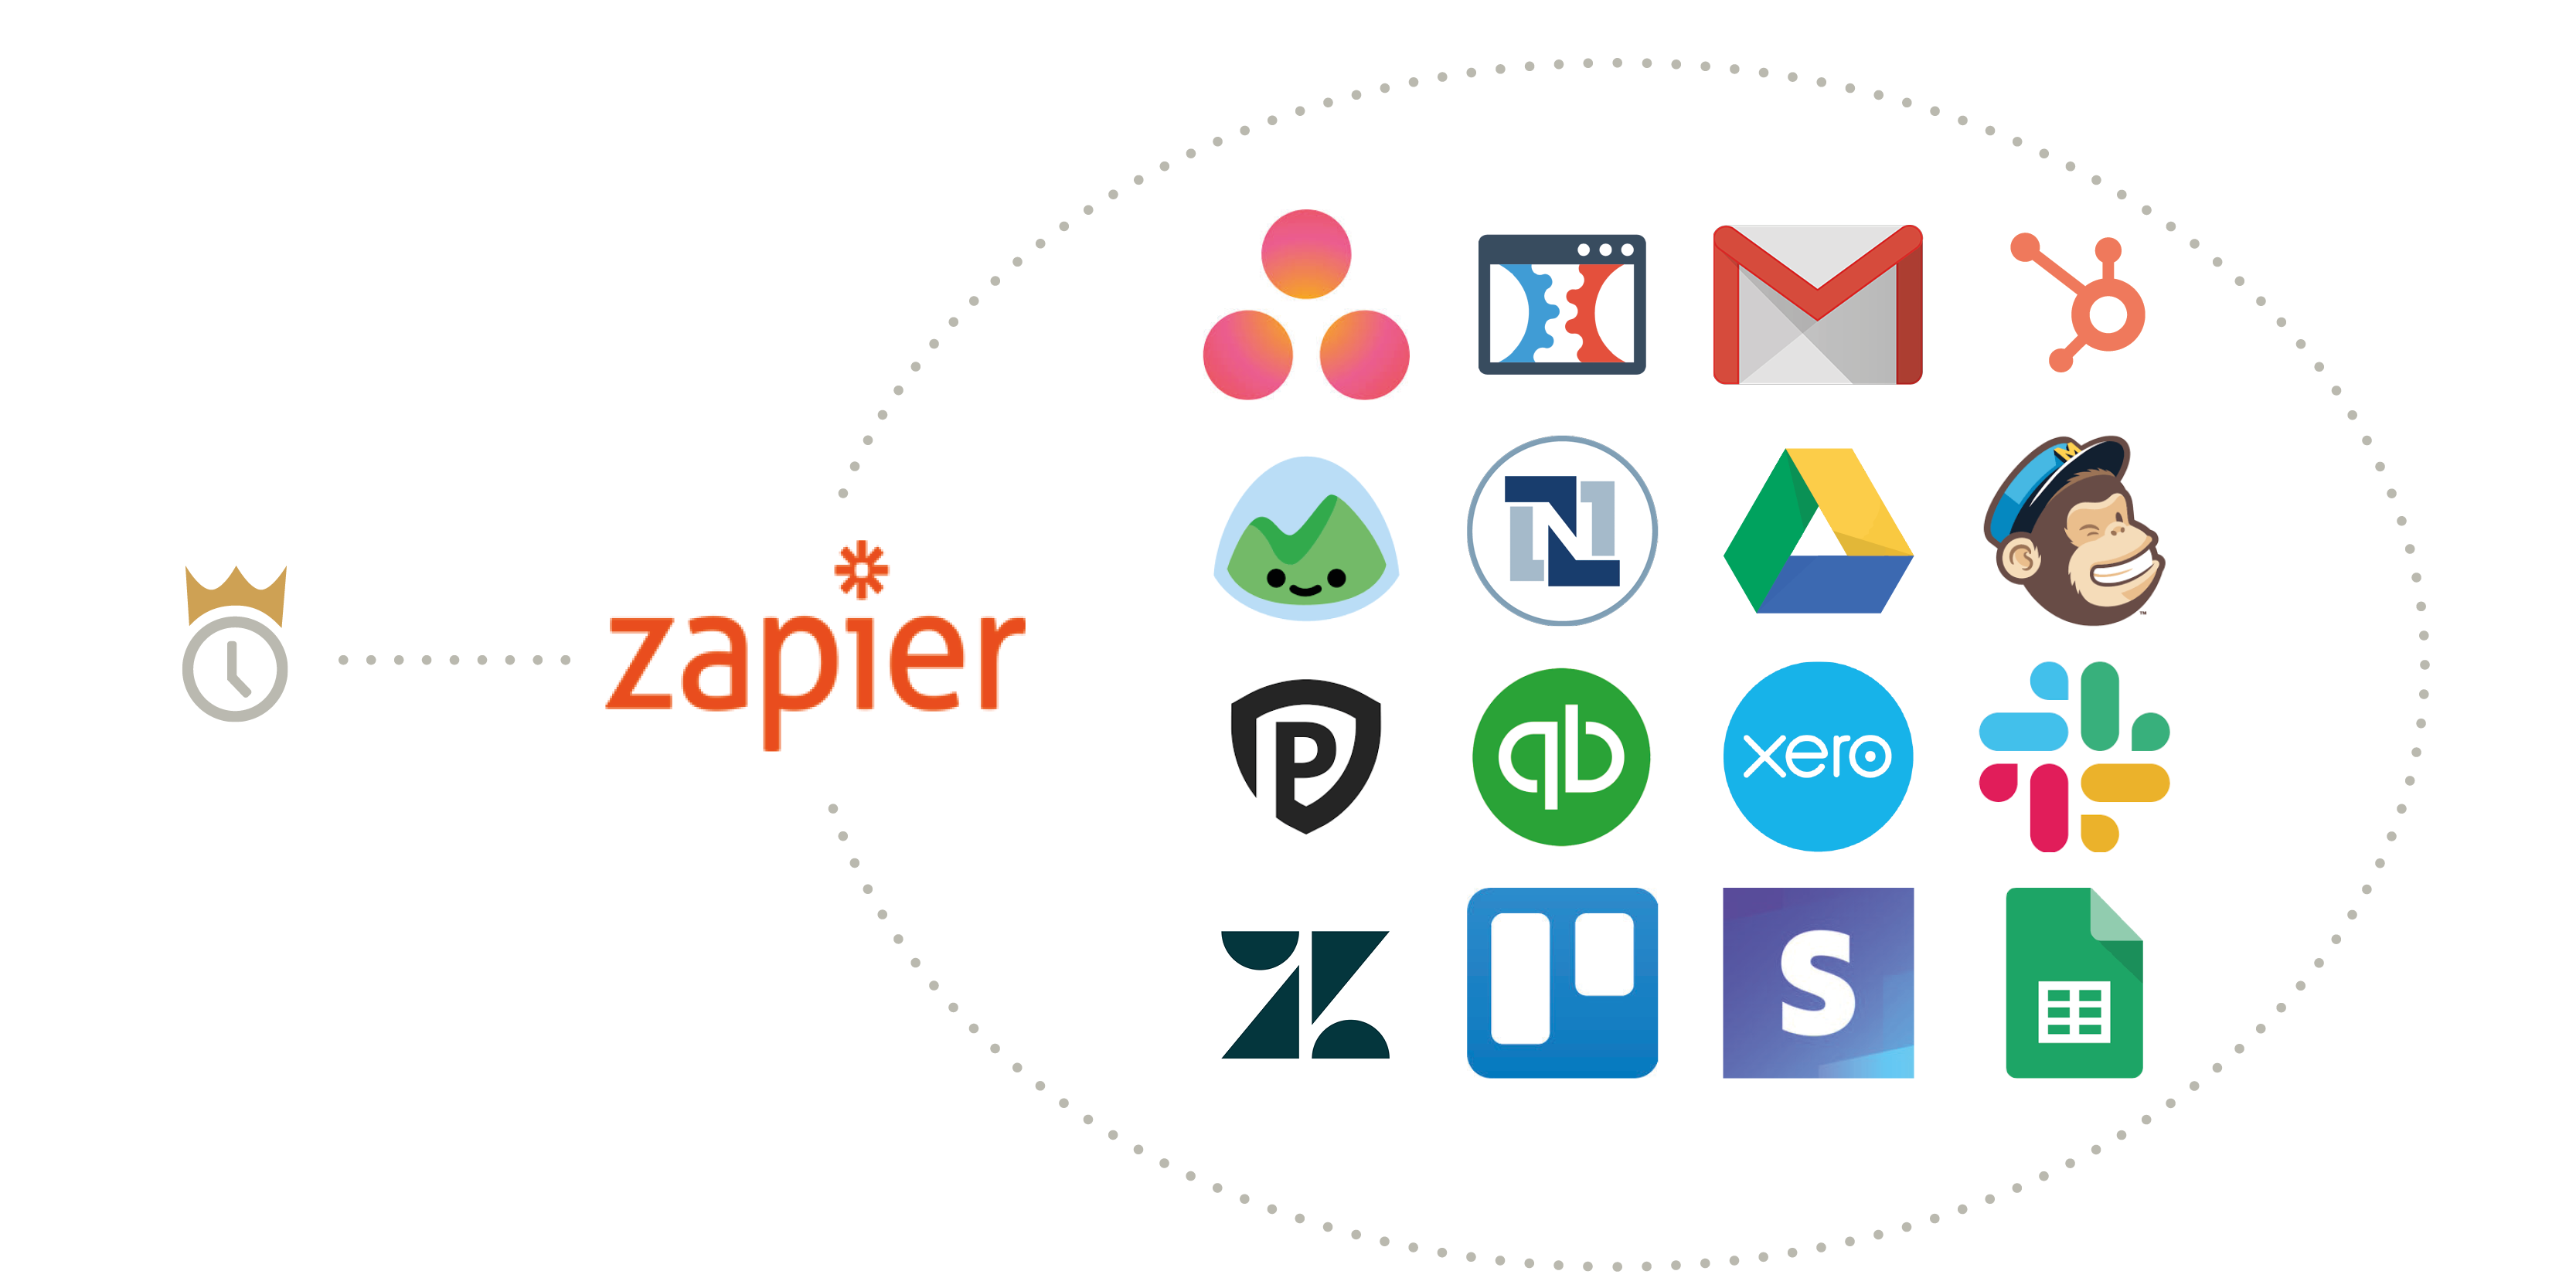 With Zapier, you can connect WiseTime to over 1,500 apps!